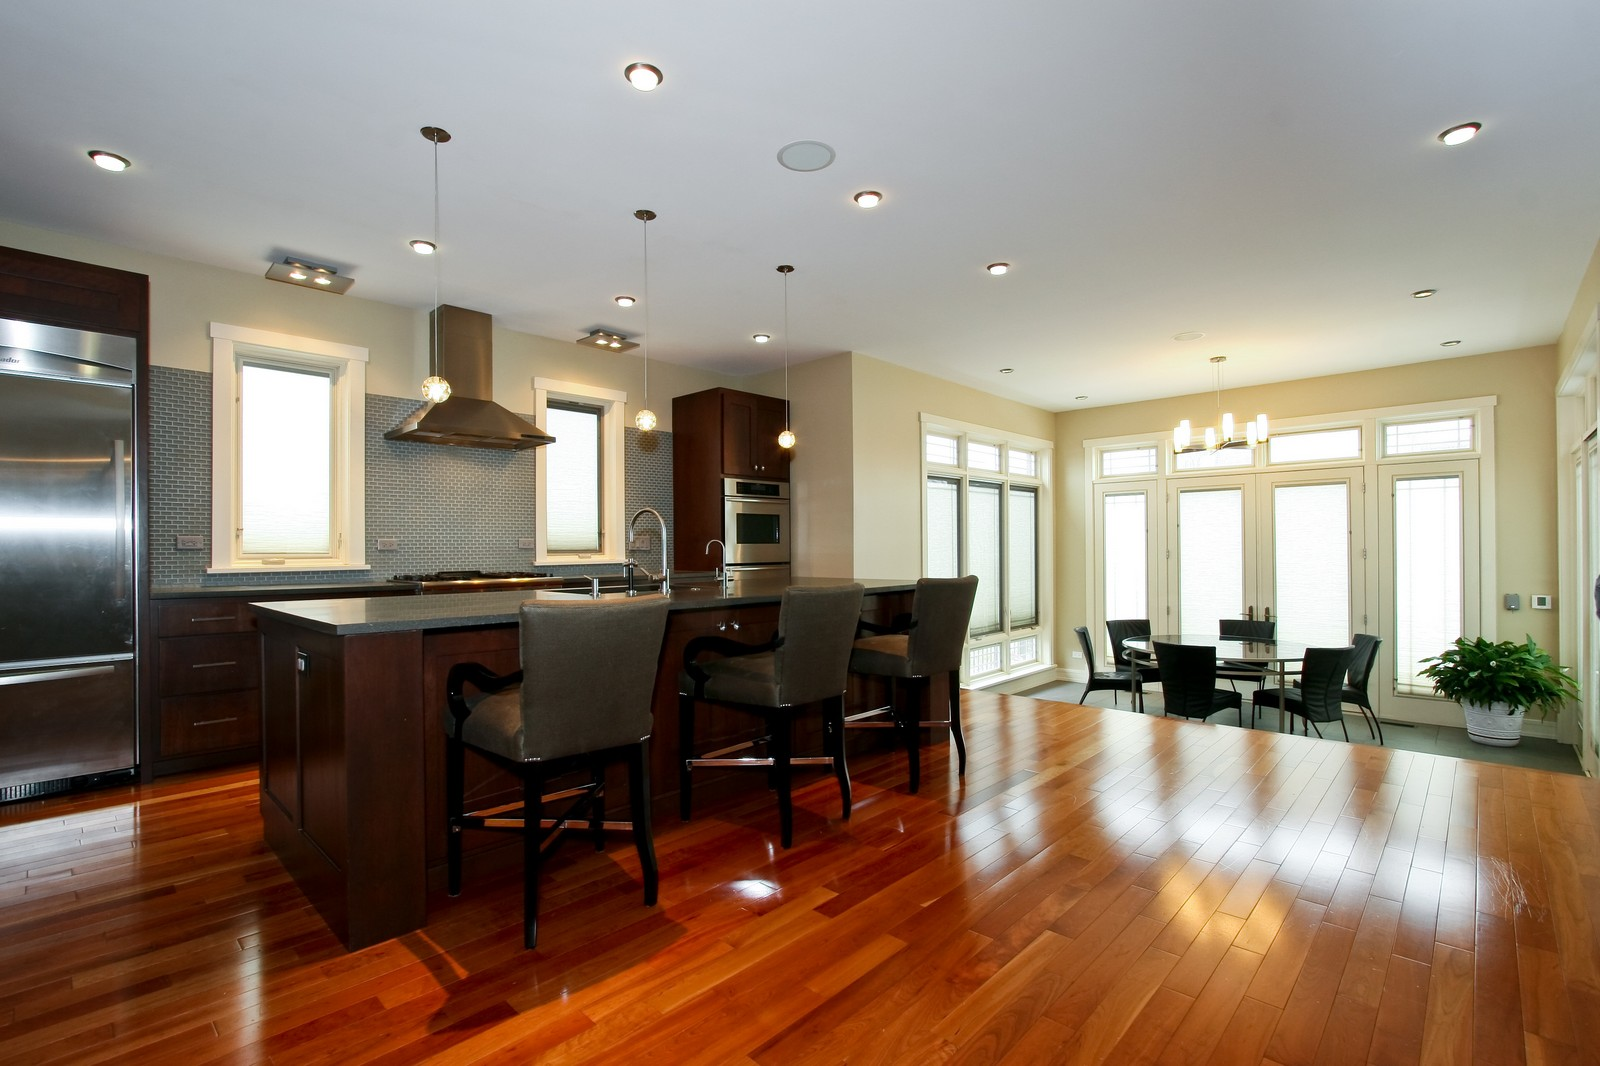 Real Estate Photography - 444 W. 38th Street, Chicago, IL, 60609 - Kitchen / Breakfast Area with heated floor